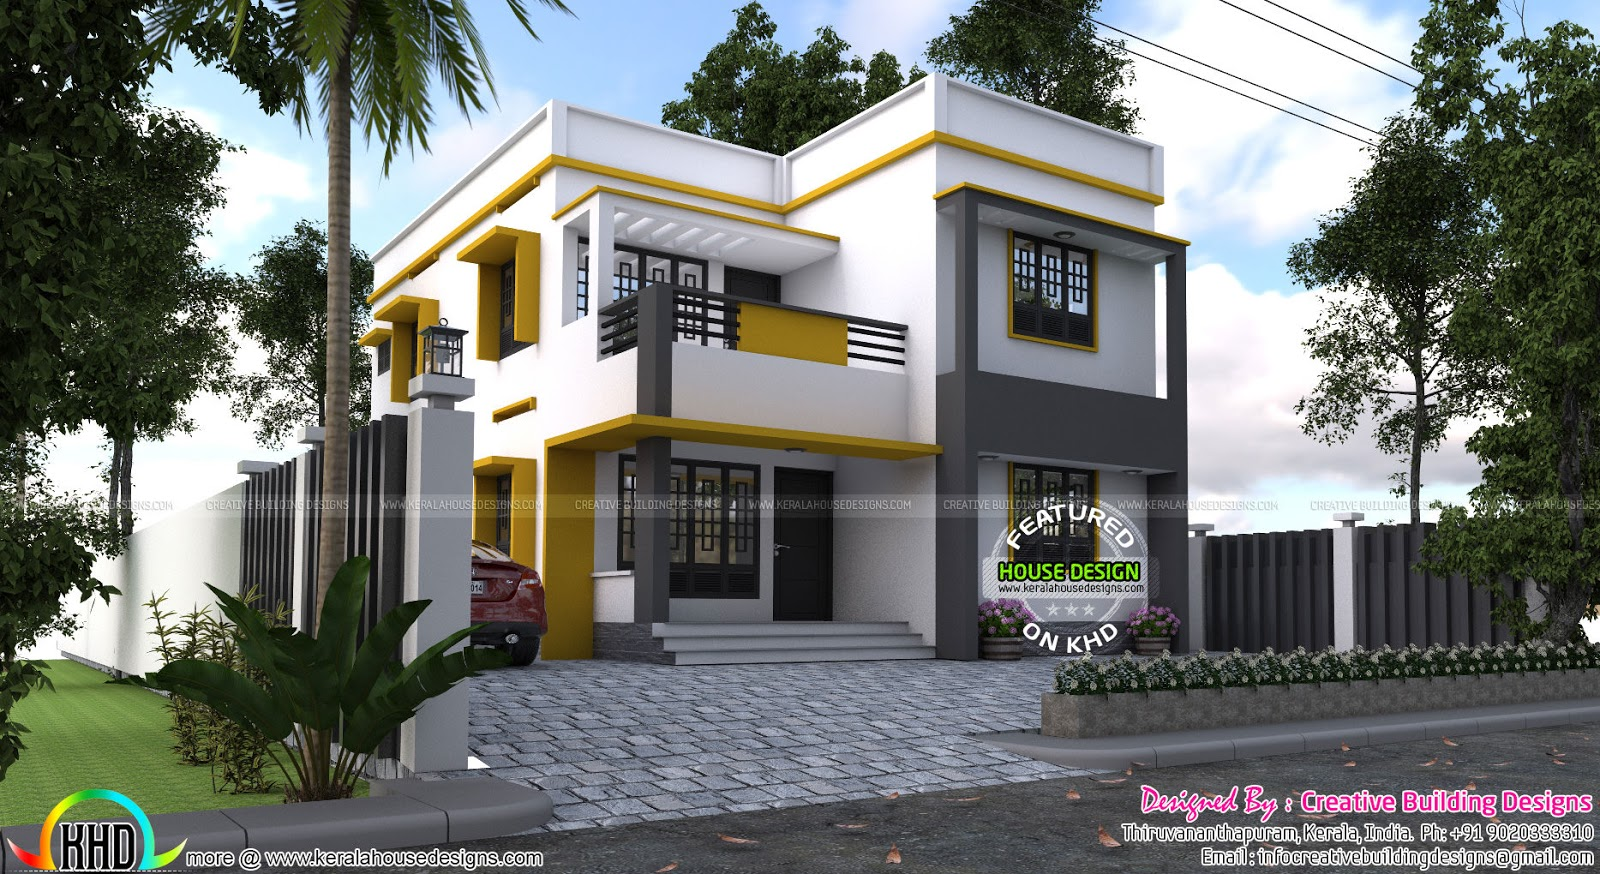 House plan by creative building designs kerala home design and floor plans - Housing designs ...